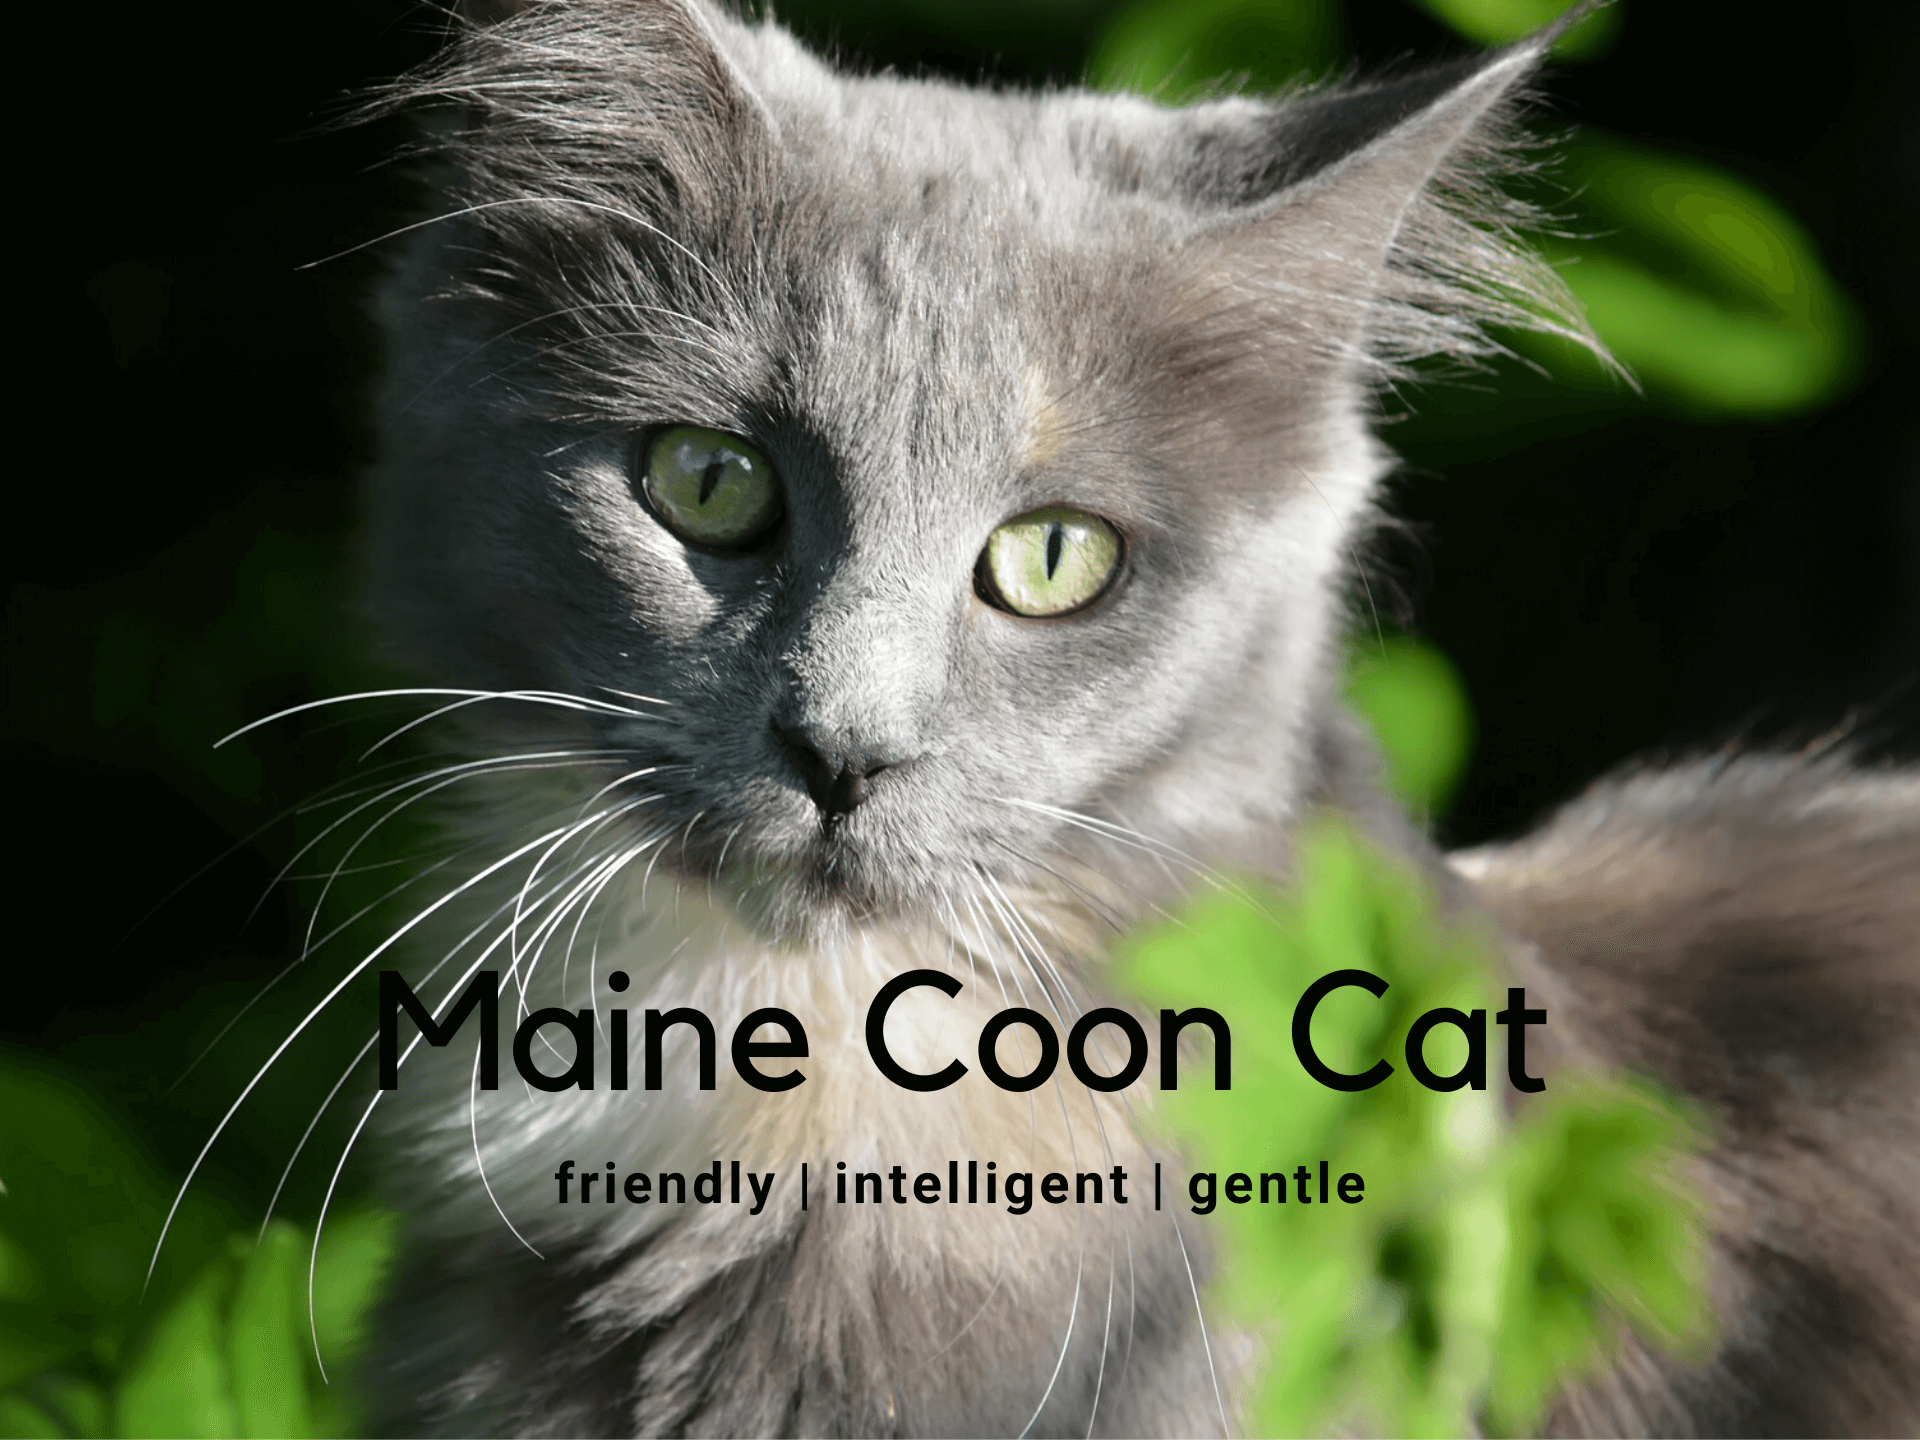 Maine Coon Cat - Breed Information